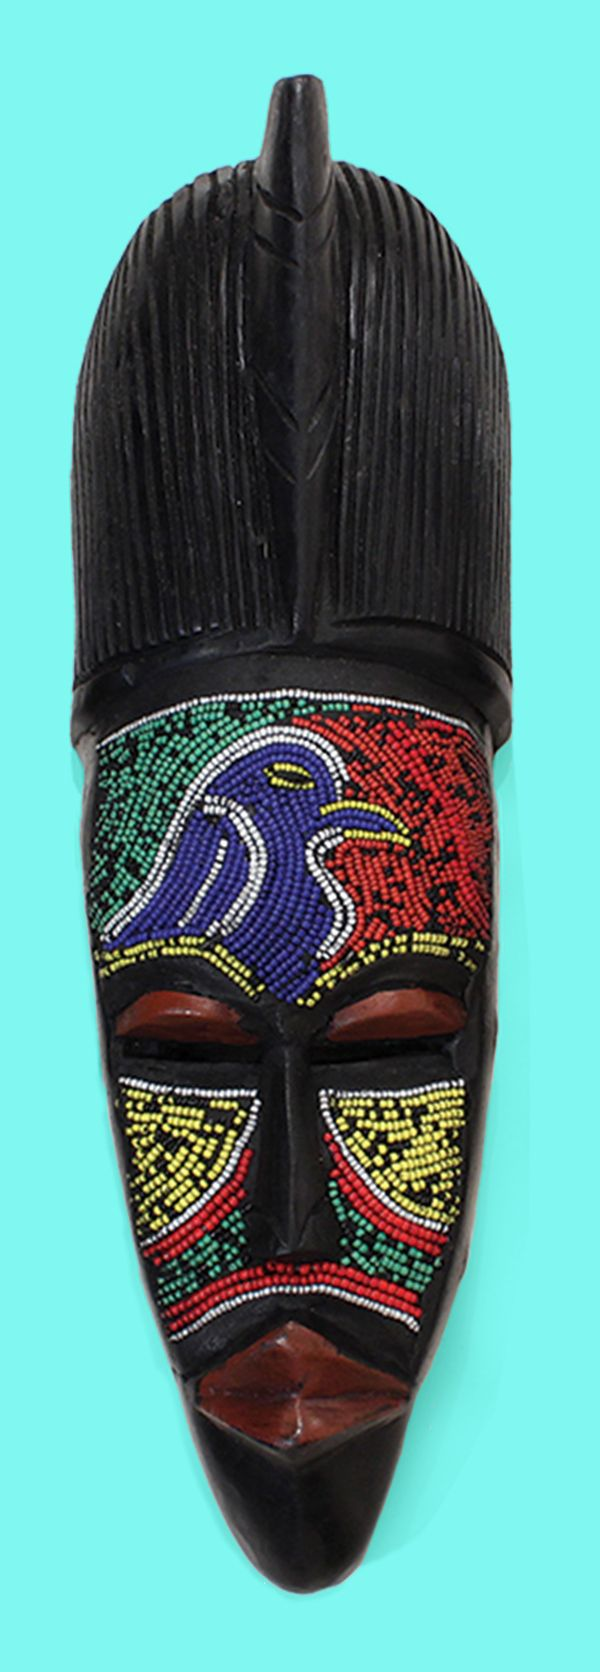 Beaded African Fang Mask - Hand carved and beaded African mask with colored beads and bold African patterns.  Each mask is handmade by African artisans in Ghana.  Colored beads adorn the faces of these traditional African masks.  Celebrate African culture and history with these beautiful African masks.  #homedecor #mask #africa #african #pattern #bold #beads #carving #art #wallart #blackhistorymonth